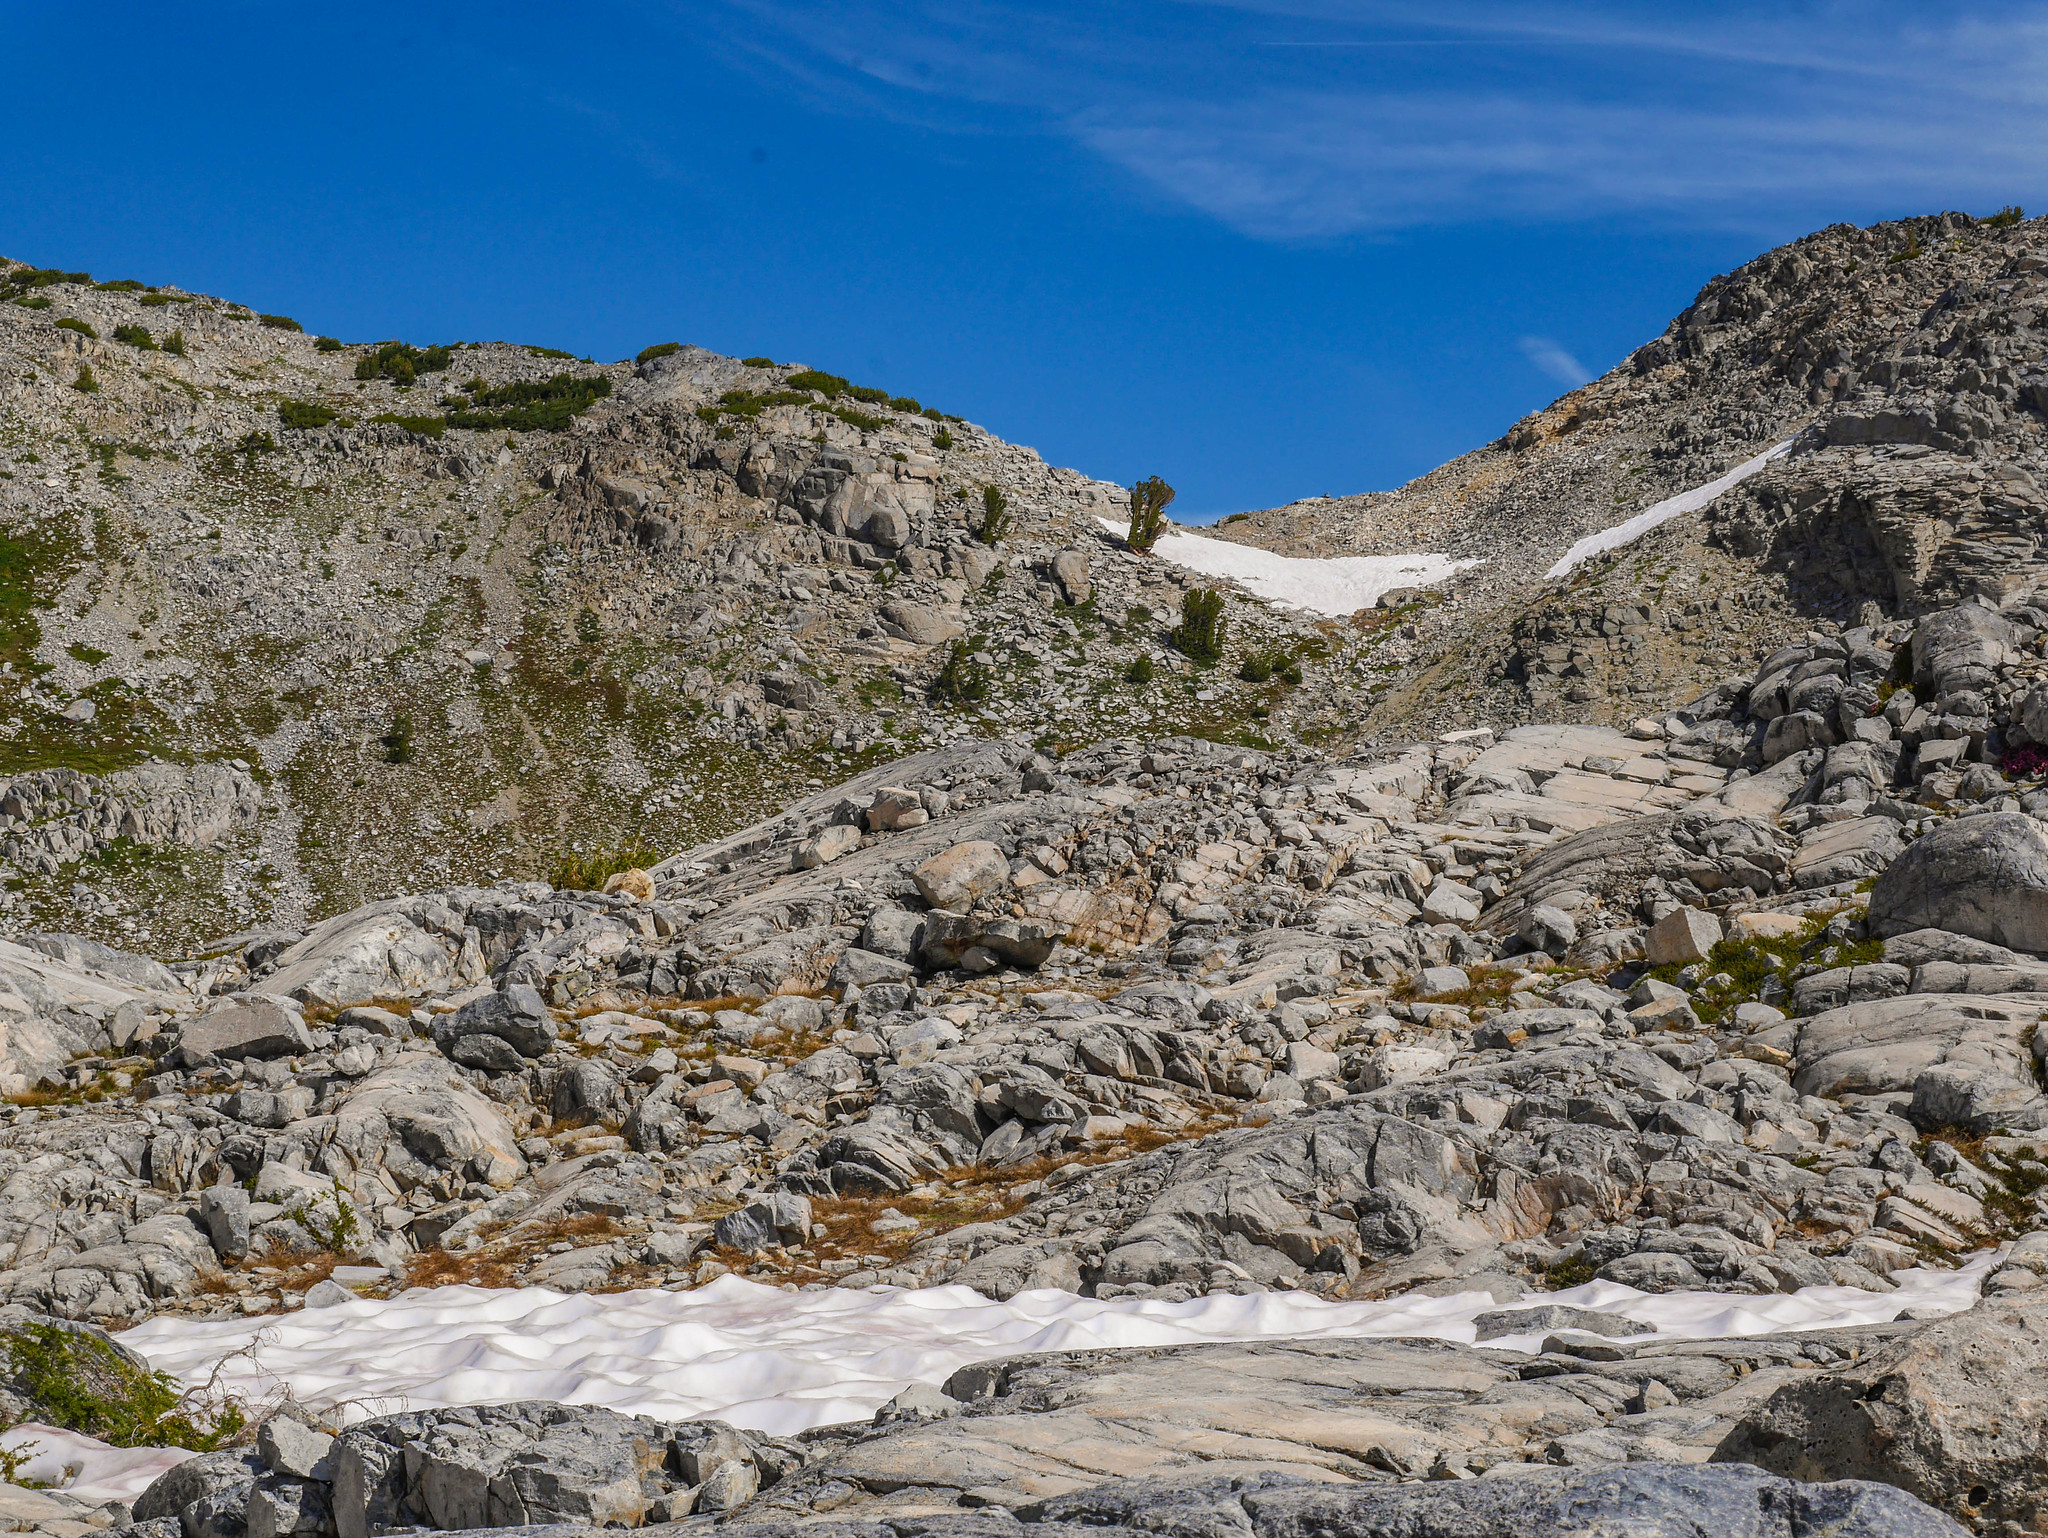 Making my way from lower to upper Nydiver lakes